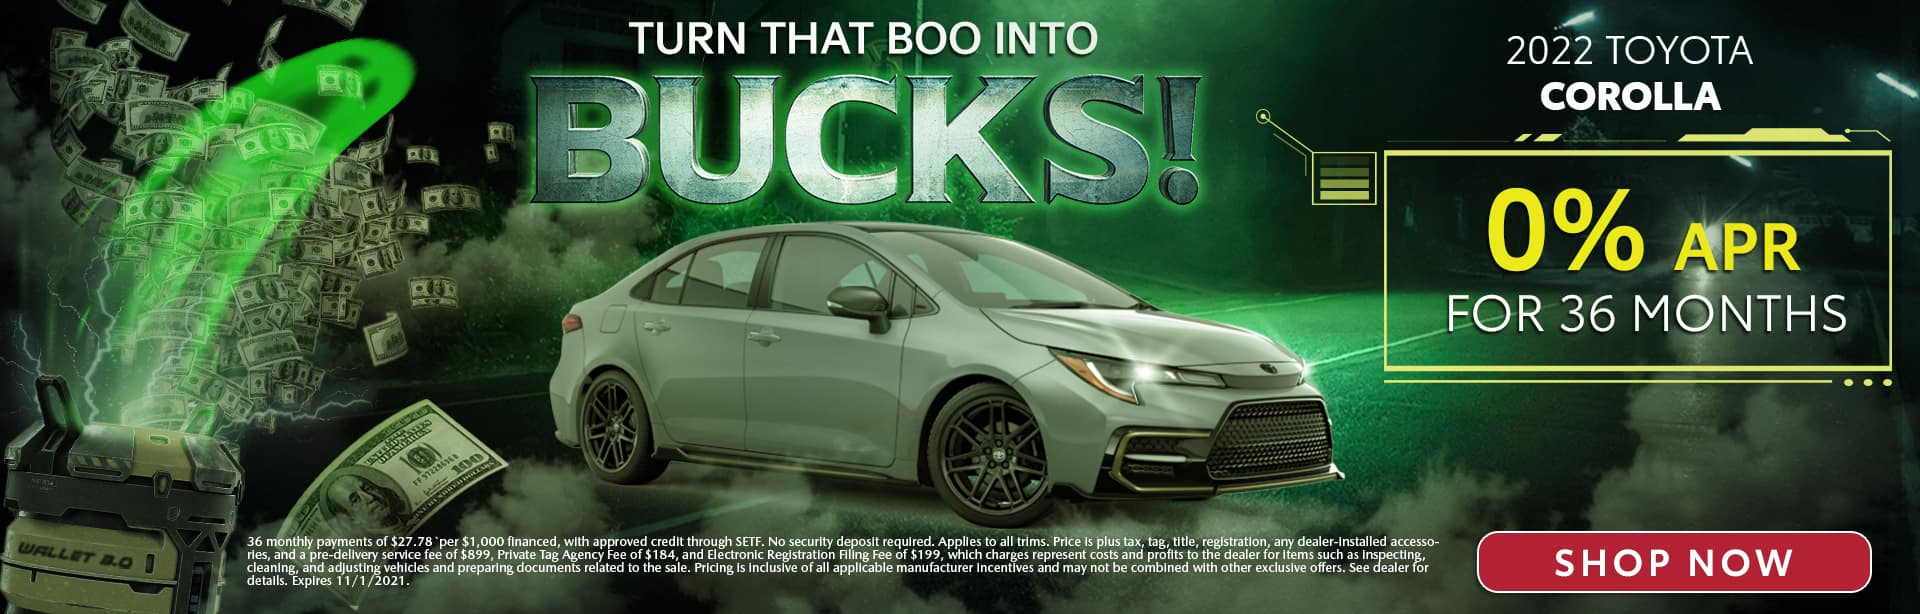 Turn That Boo Into Bucks | 2022 Toyota Corolla | 0% APR For 36 Months